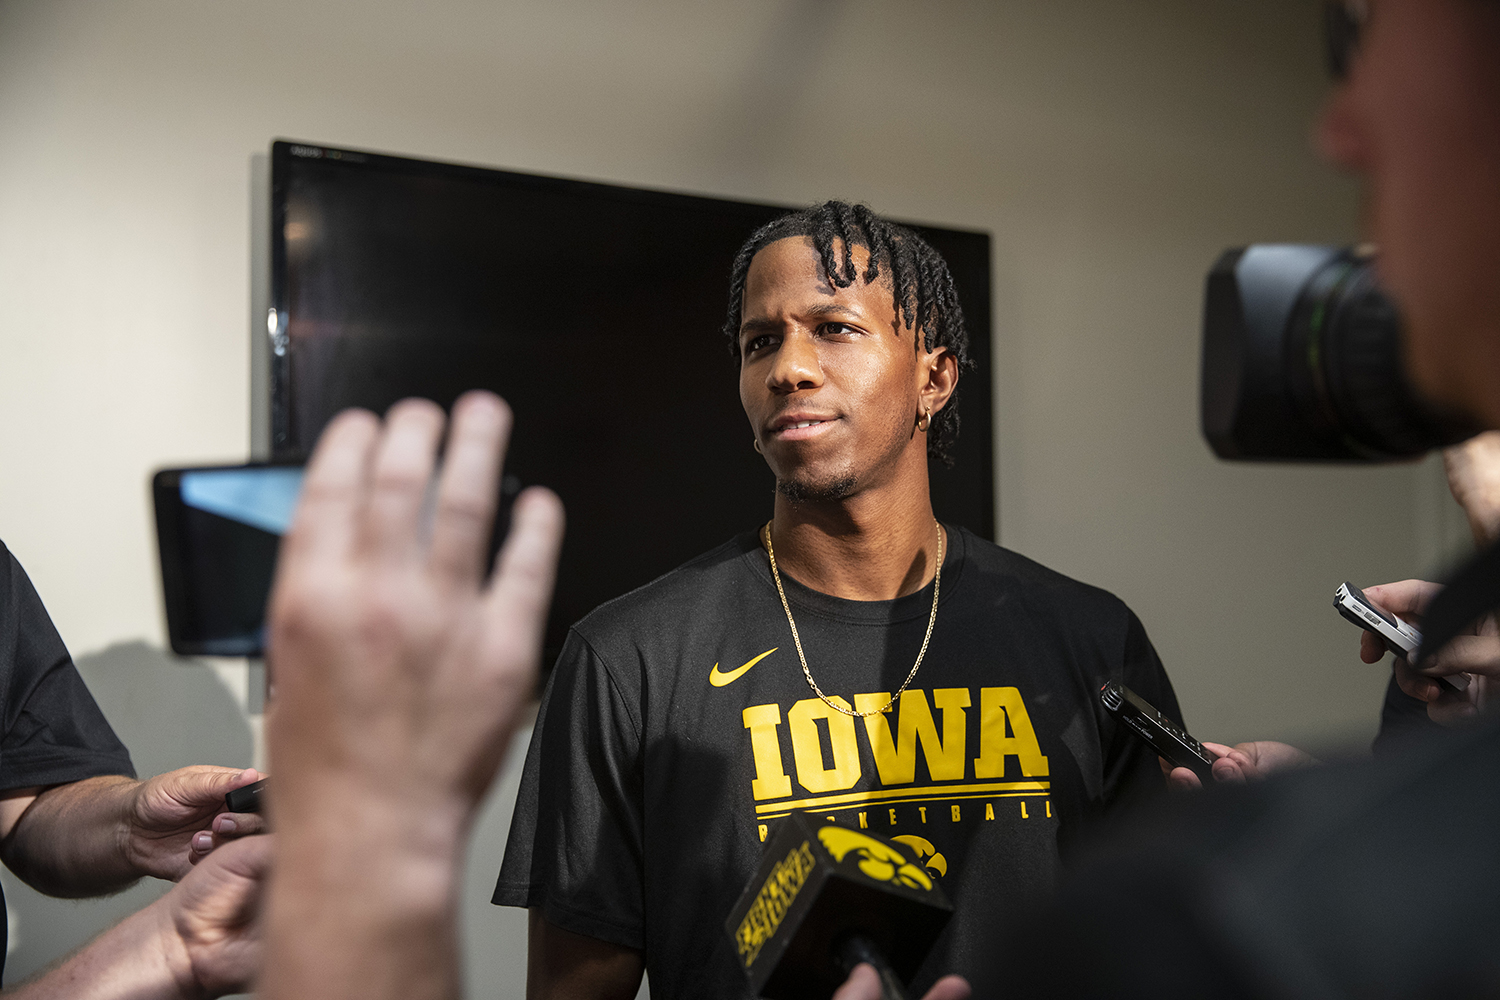 Bakari Evelyn speaks with members of the press during an Iowa men's basketball media availability at Carver-Hawkeye Arena on July 24, 2019. (Katie Goodale/The Daily Iowan)